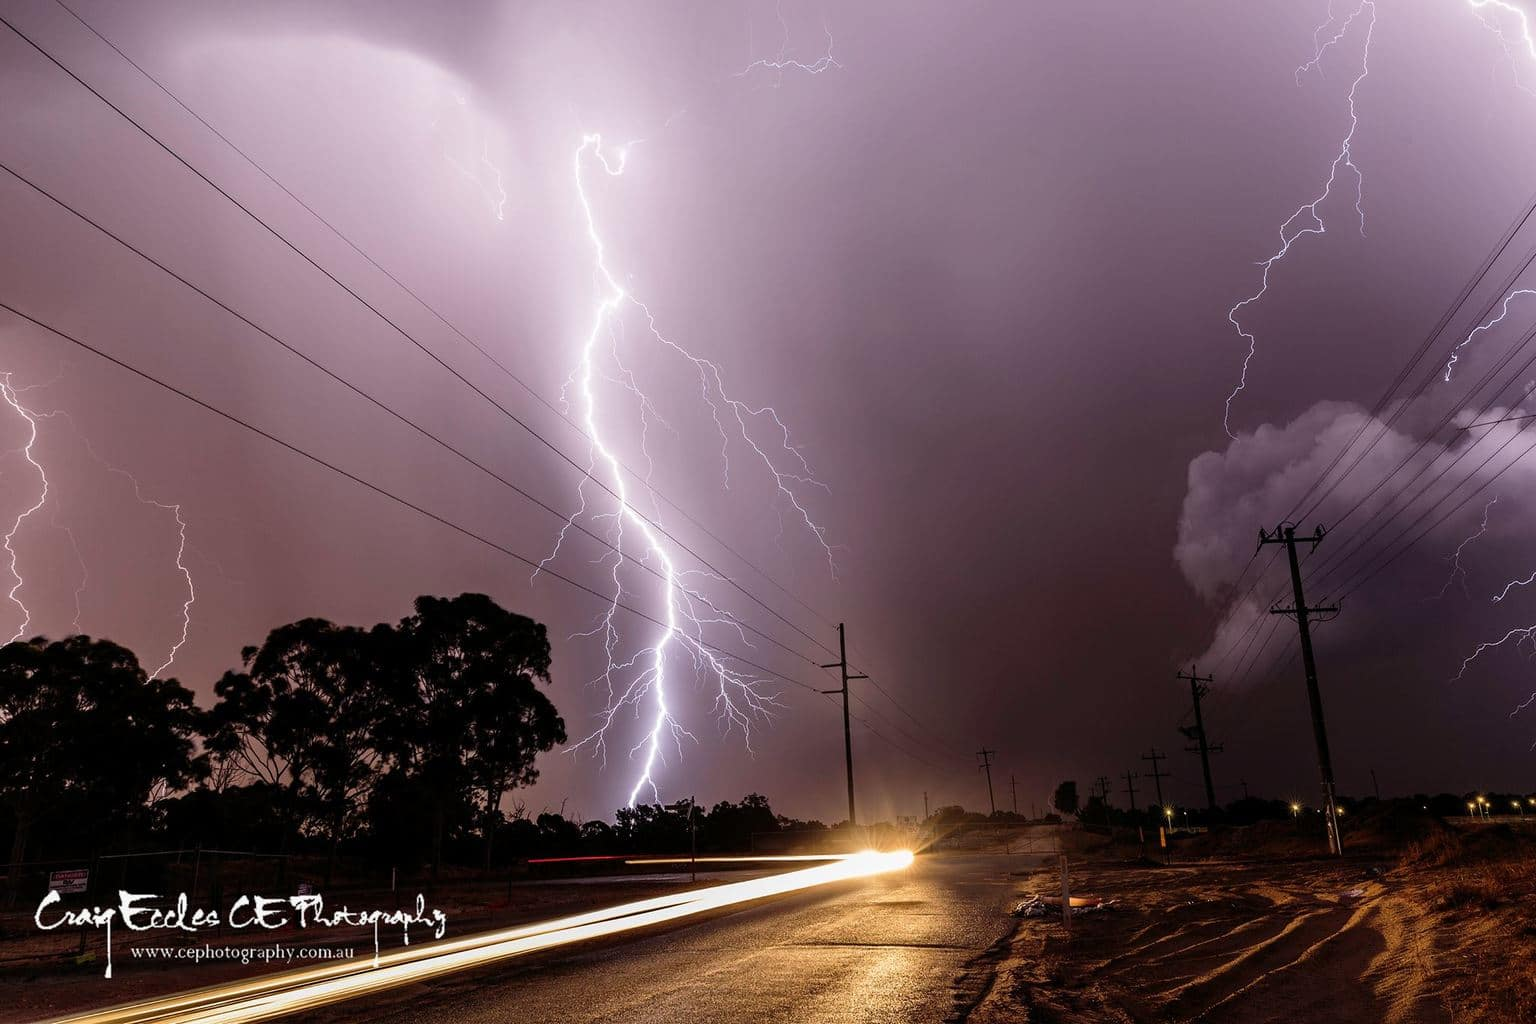 Earlier this year in Perth Australia we had a crazy night, strikes all around me, strong gusty winds, heavy rain and not to mention 6 power poles just down the road were snapped in half.